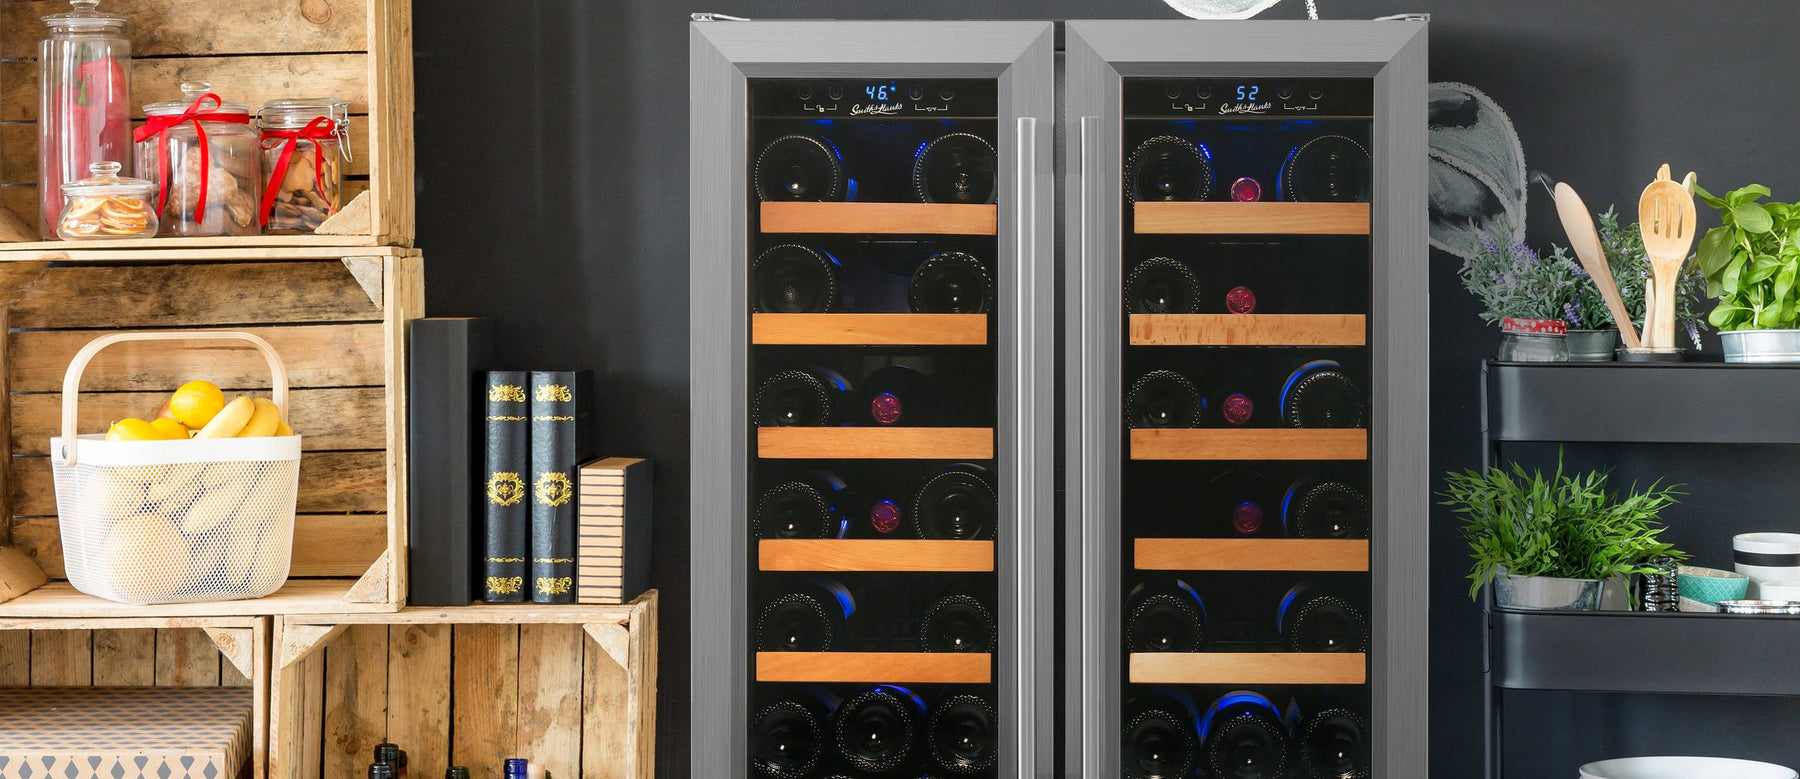 Wine Cooler Sizes: Which Is Right for You?